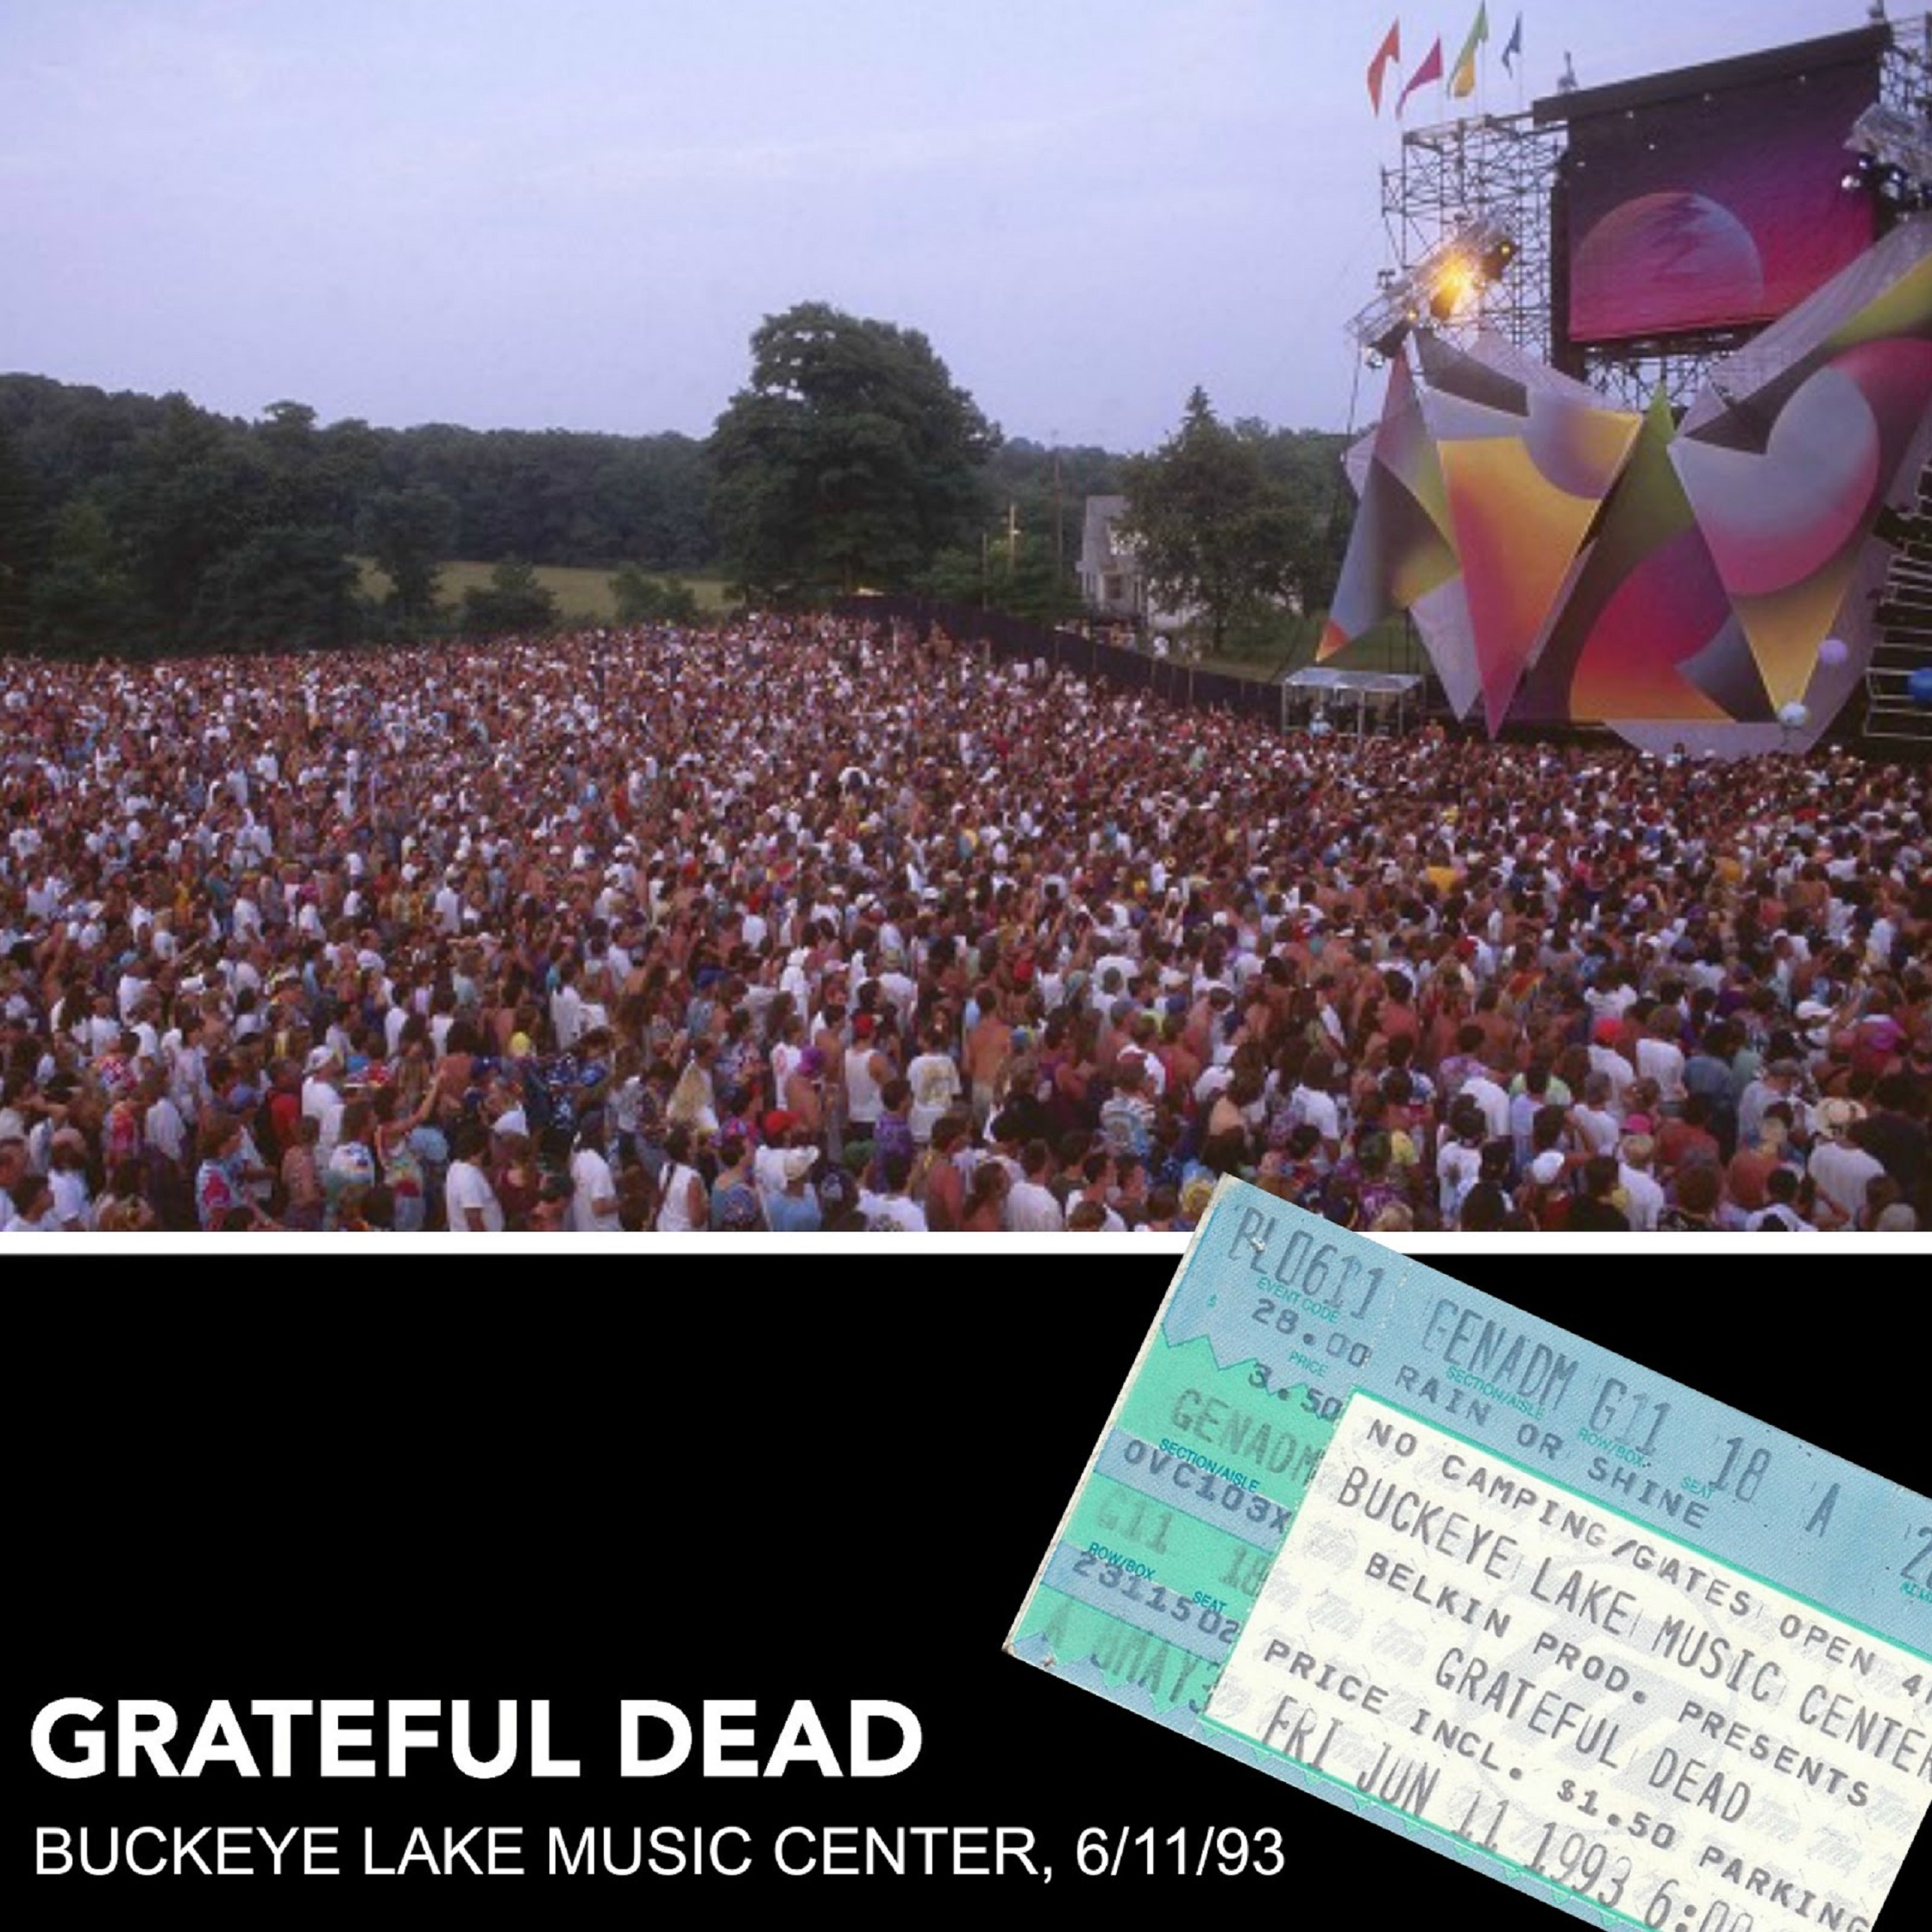 Dark Star Orchestra to Recreate Epic Grateful Dead '93 Buckeye Lake Show